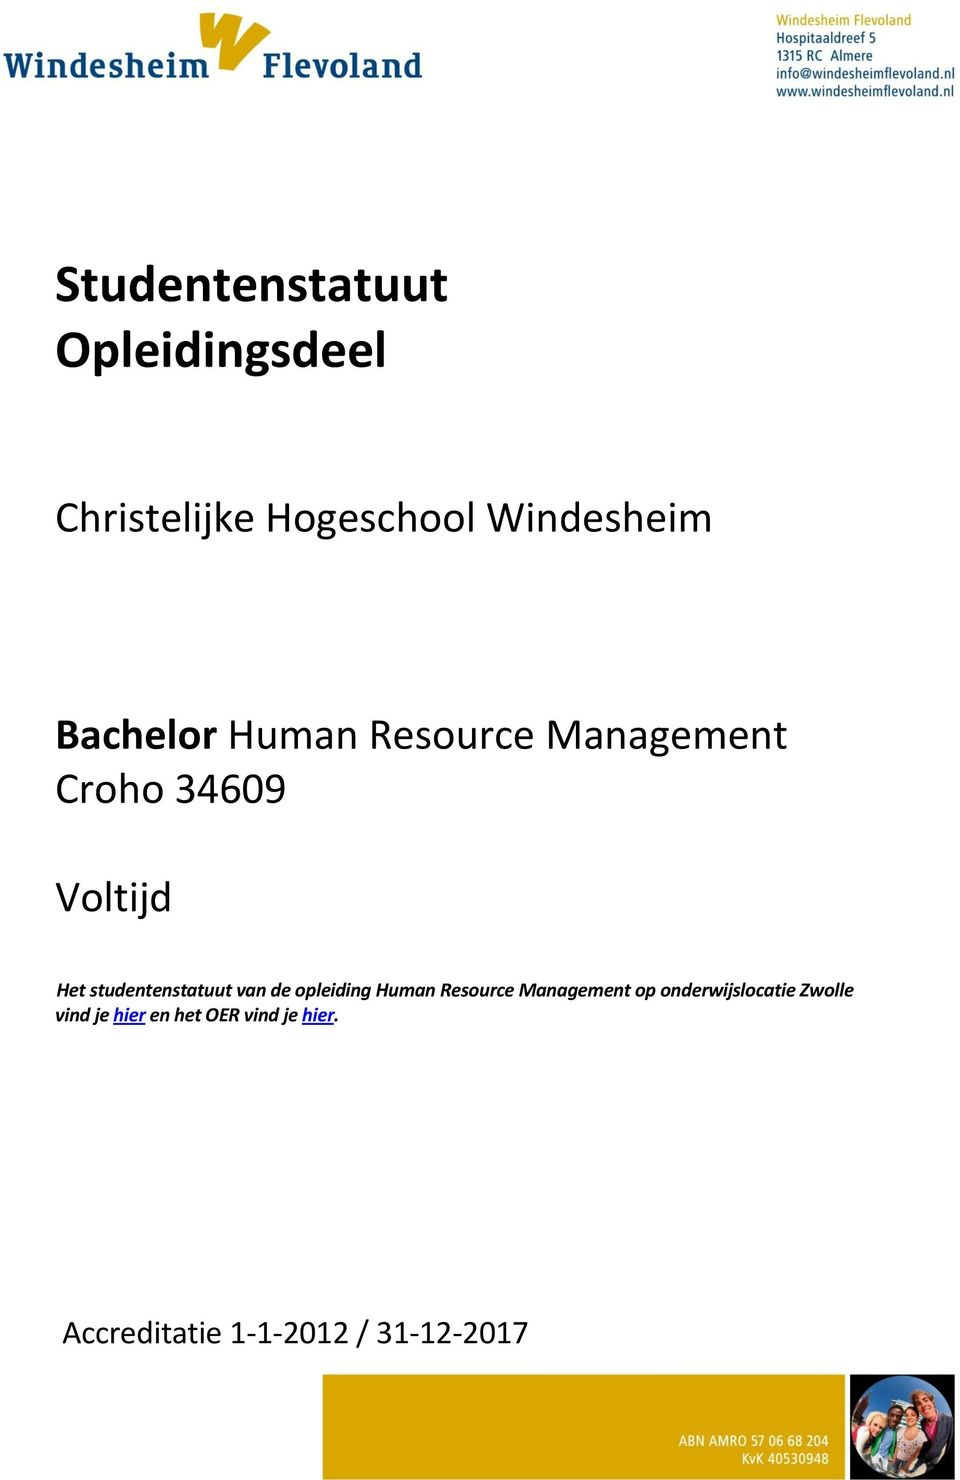 studentenstatuut van de opleiding Human Resource Management op